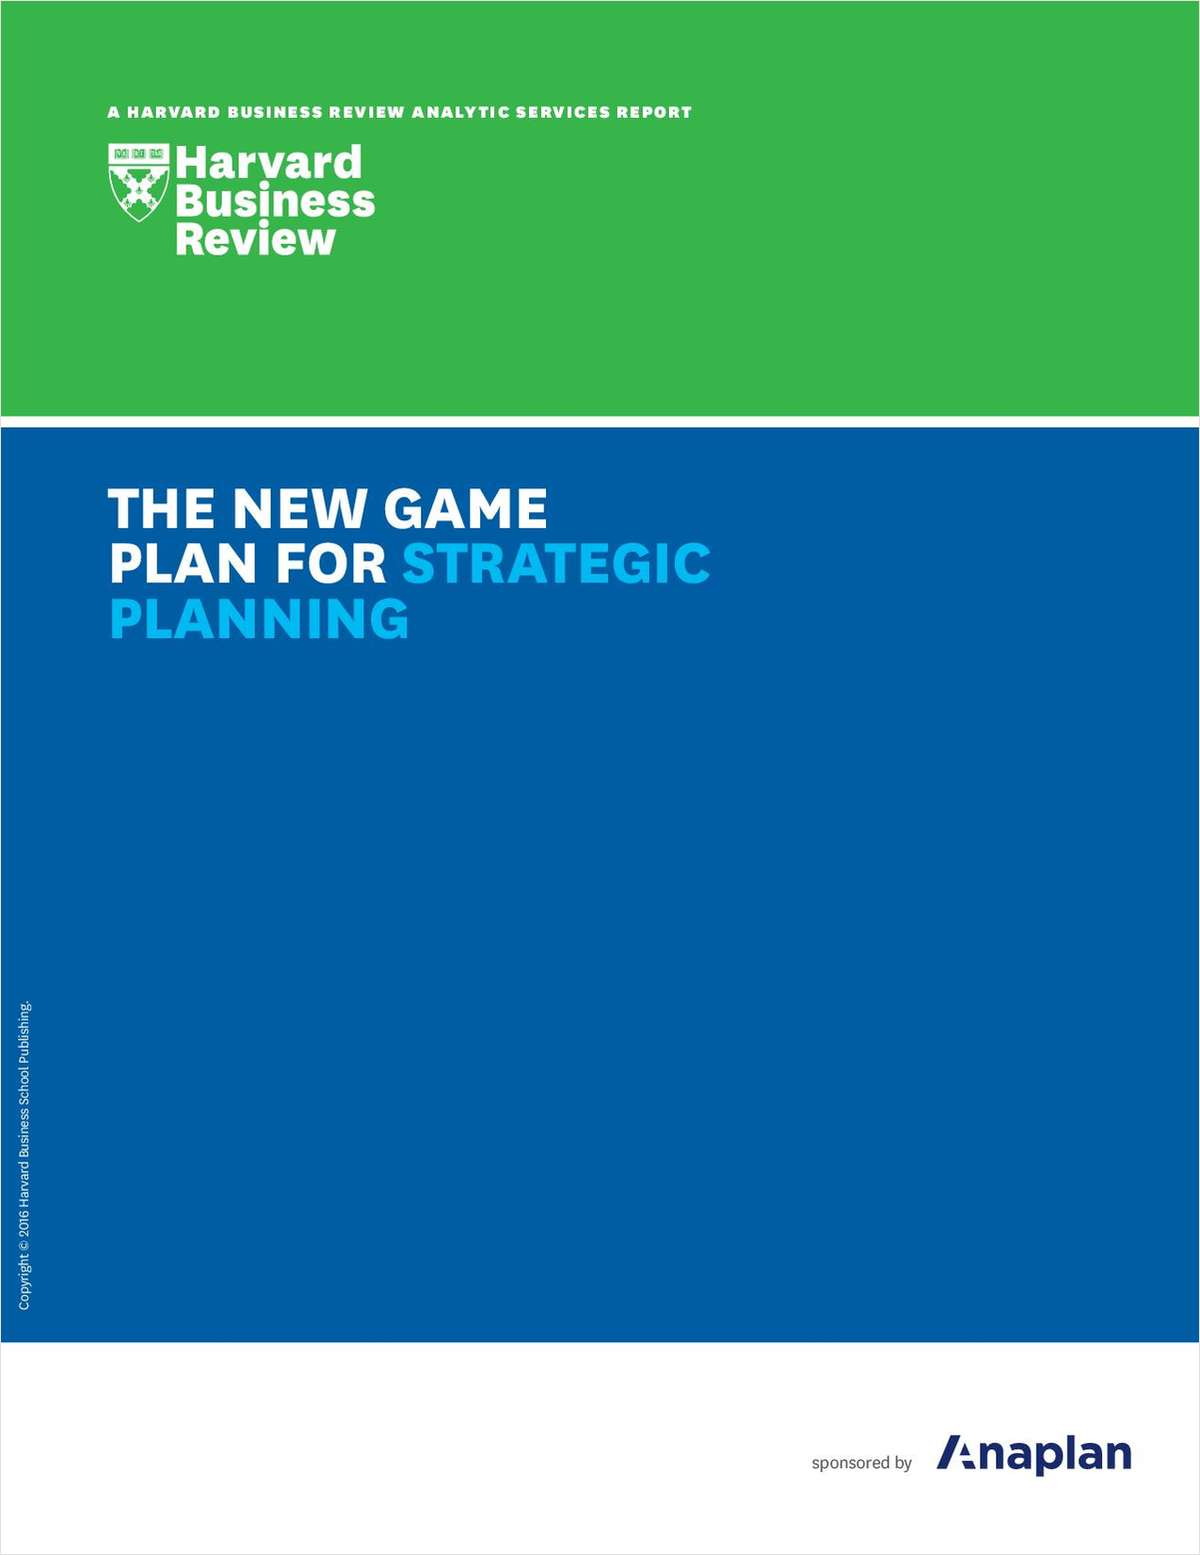 Harvard Business Review: The New Game Plan for Strategic Planning